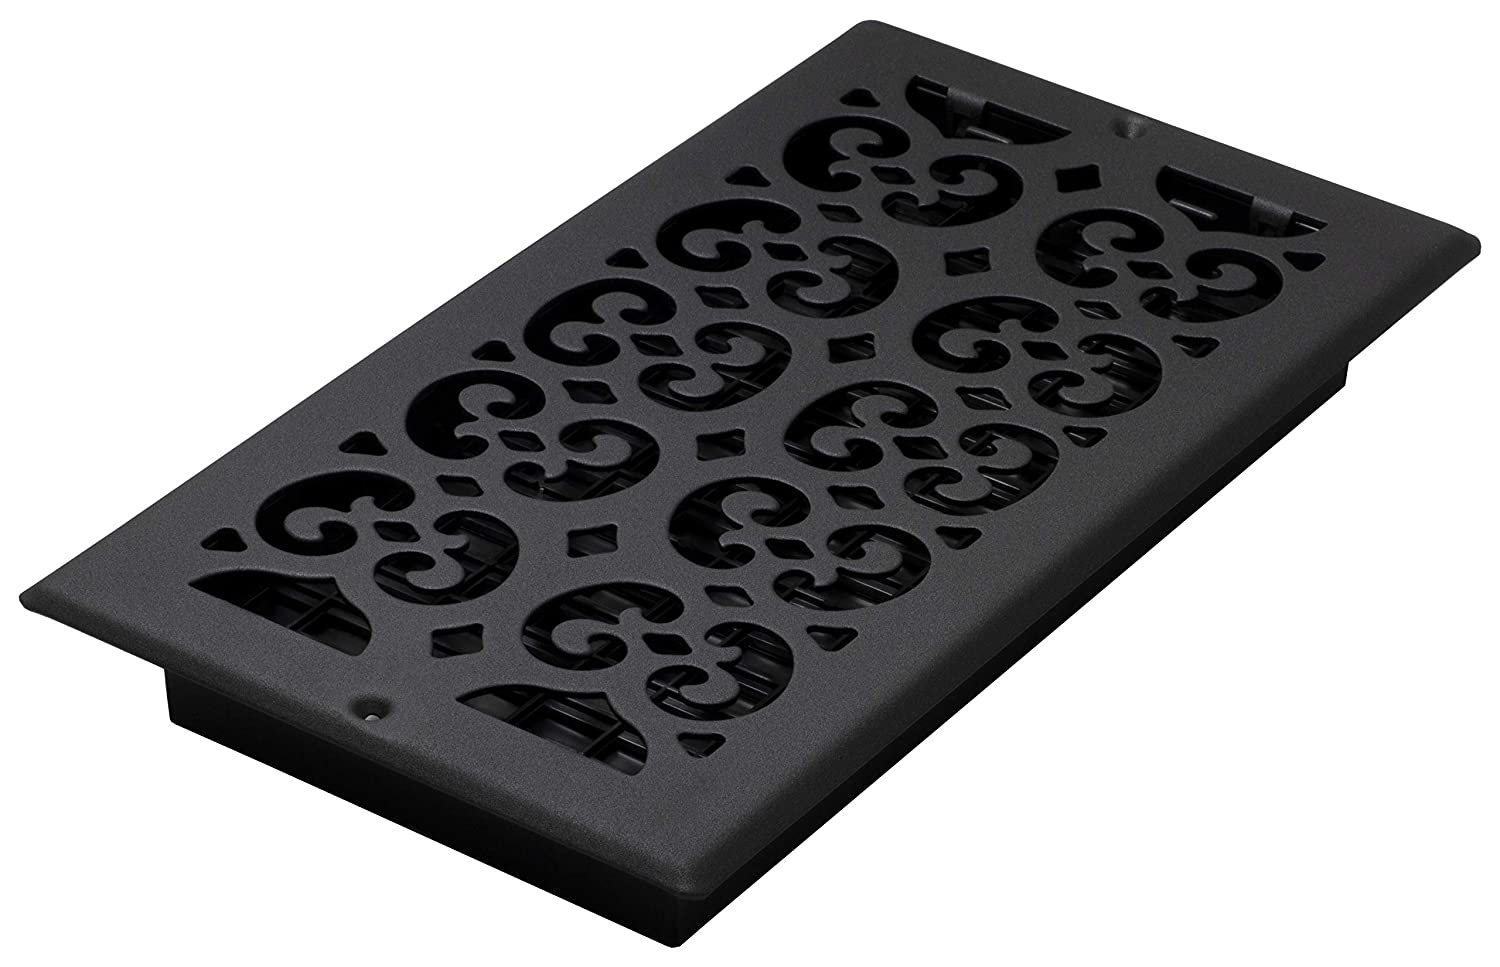 Decor Grates ST612W 6-Inch by 12-Inch Painted Wall Register, Black Textured